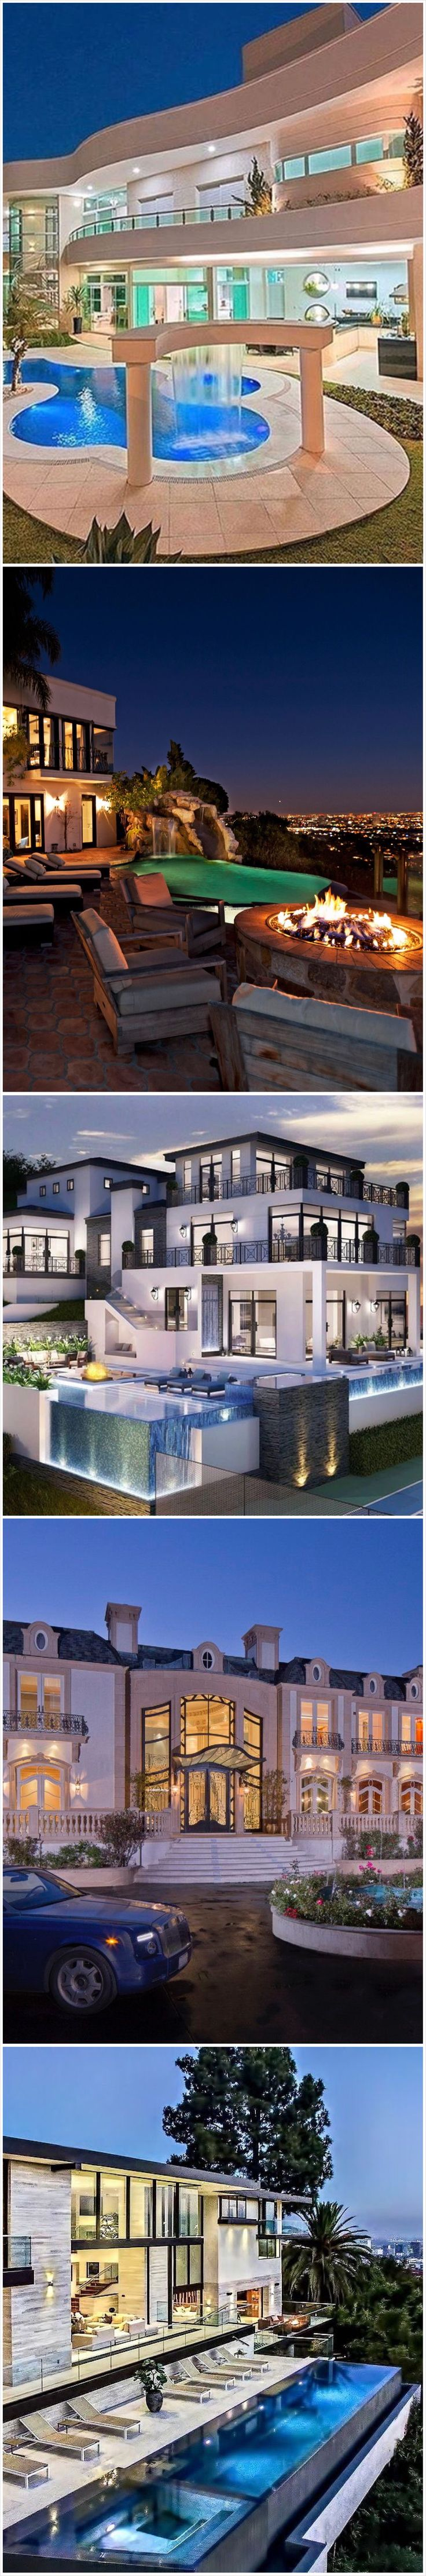 LosmAngeles Mansion Dream Homes #styleestate G List